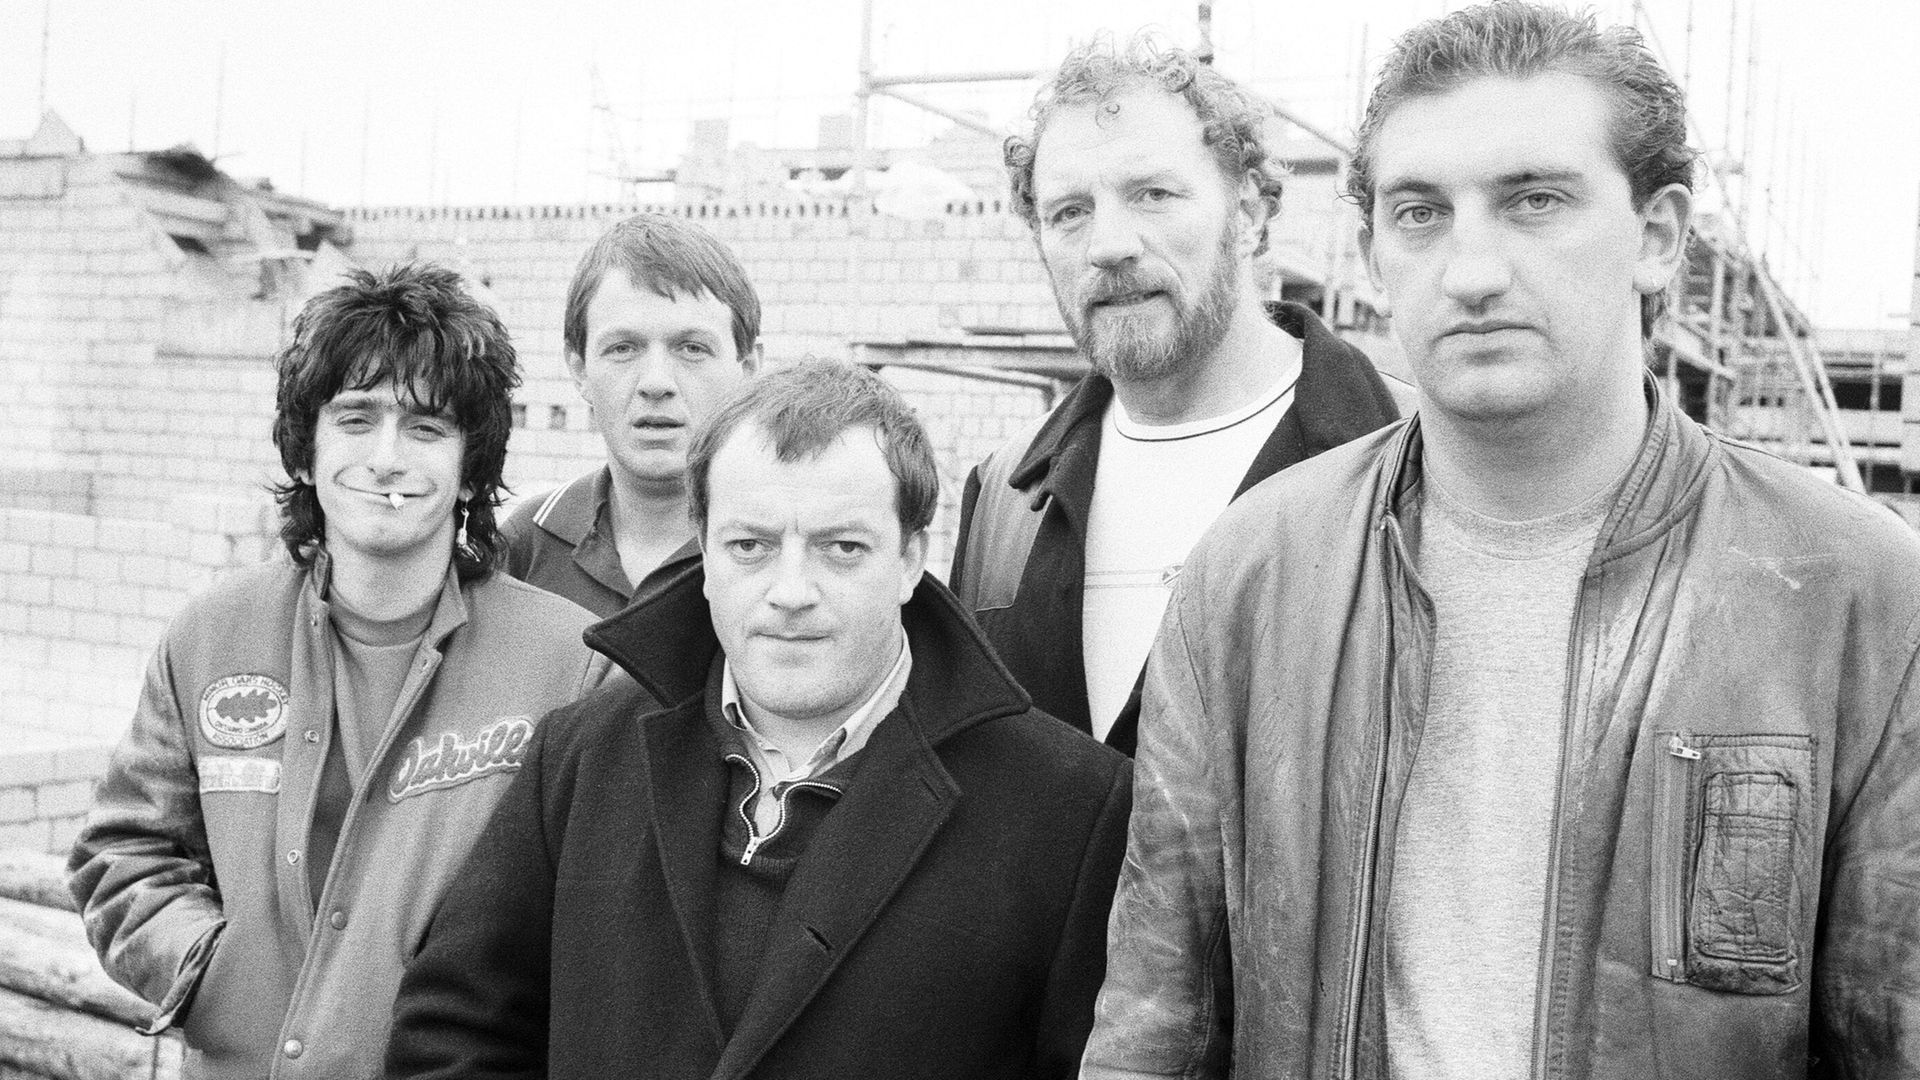 The cast of Auf Wiedersehen, Pet. From left: Gary Holton, Kevin Whately, Tim Healey, Pat Roach and Jimmy Nail - Credit: Getty Images